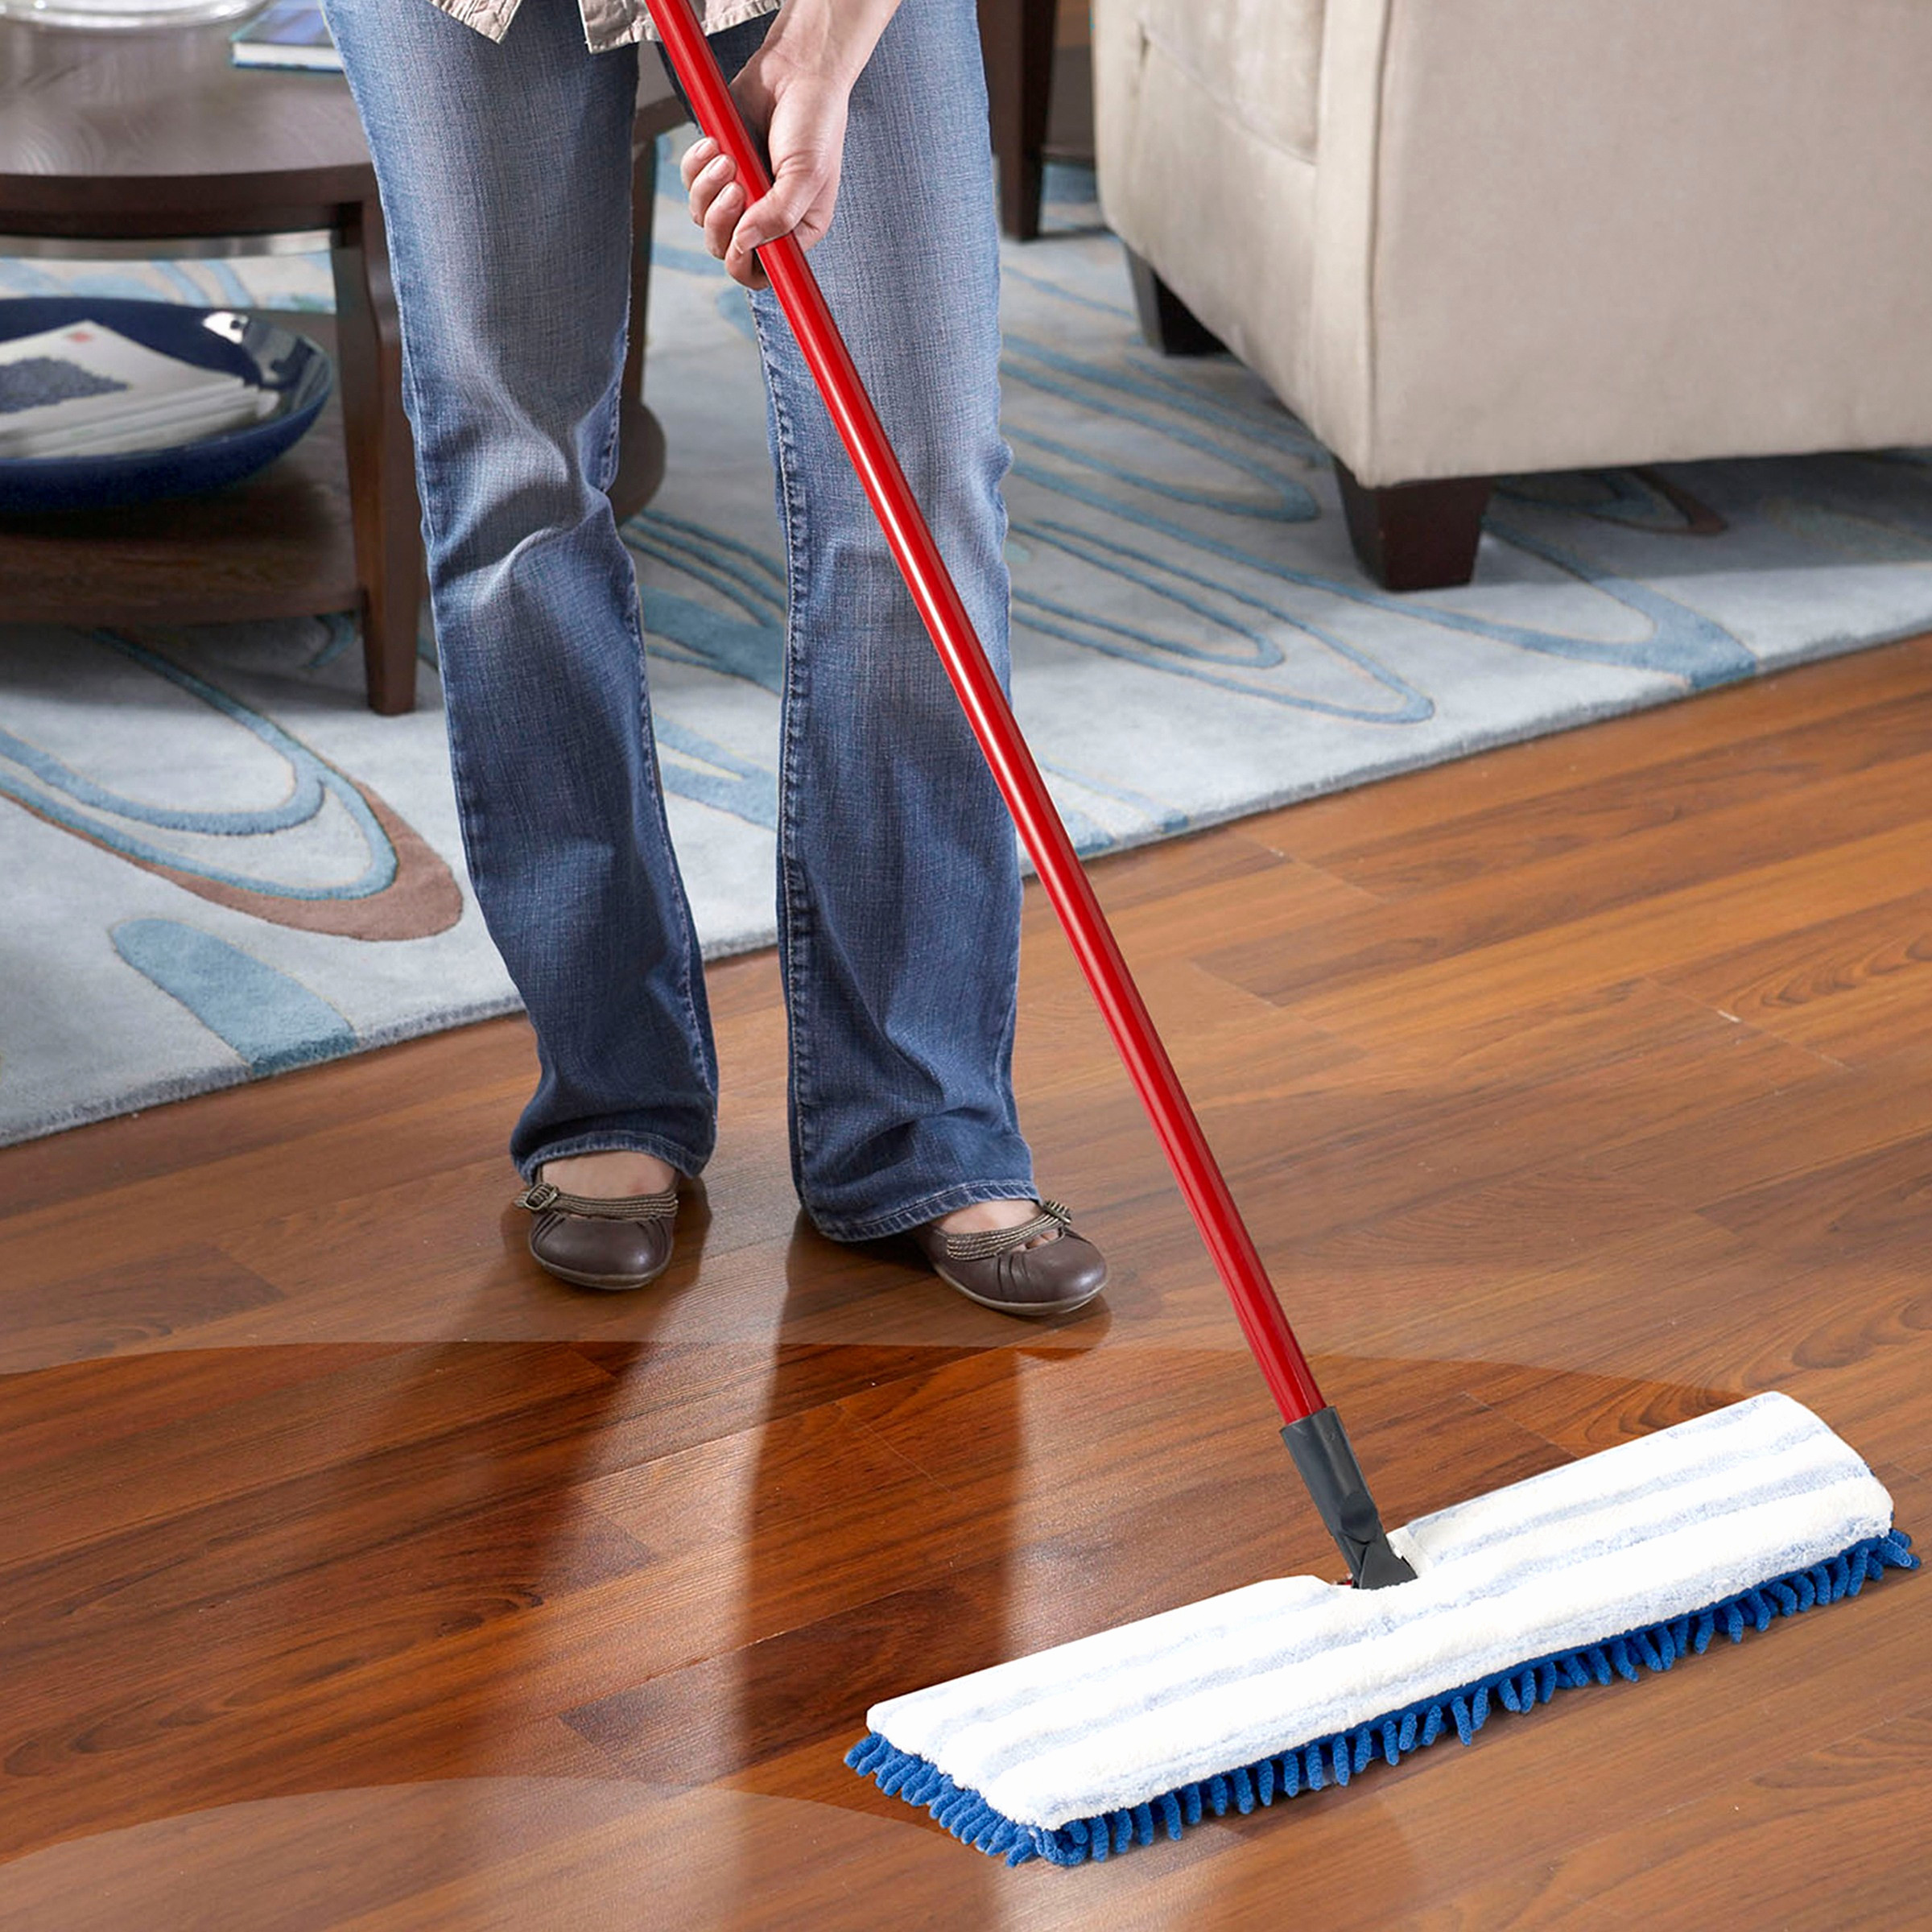 Hardwood Floor Mop Reviews Of Best Steam Mop Hardwood Floors Floor In Best Steam Mop Hardwood Floors 50 Inspirational Best Mop for Ceramic Tile Floors 50